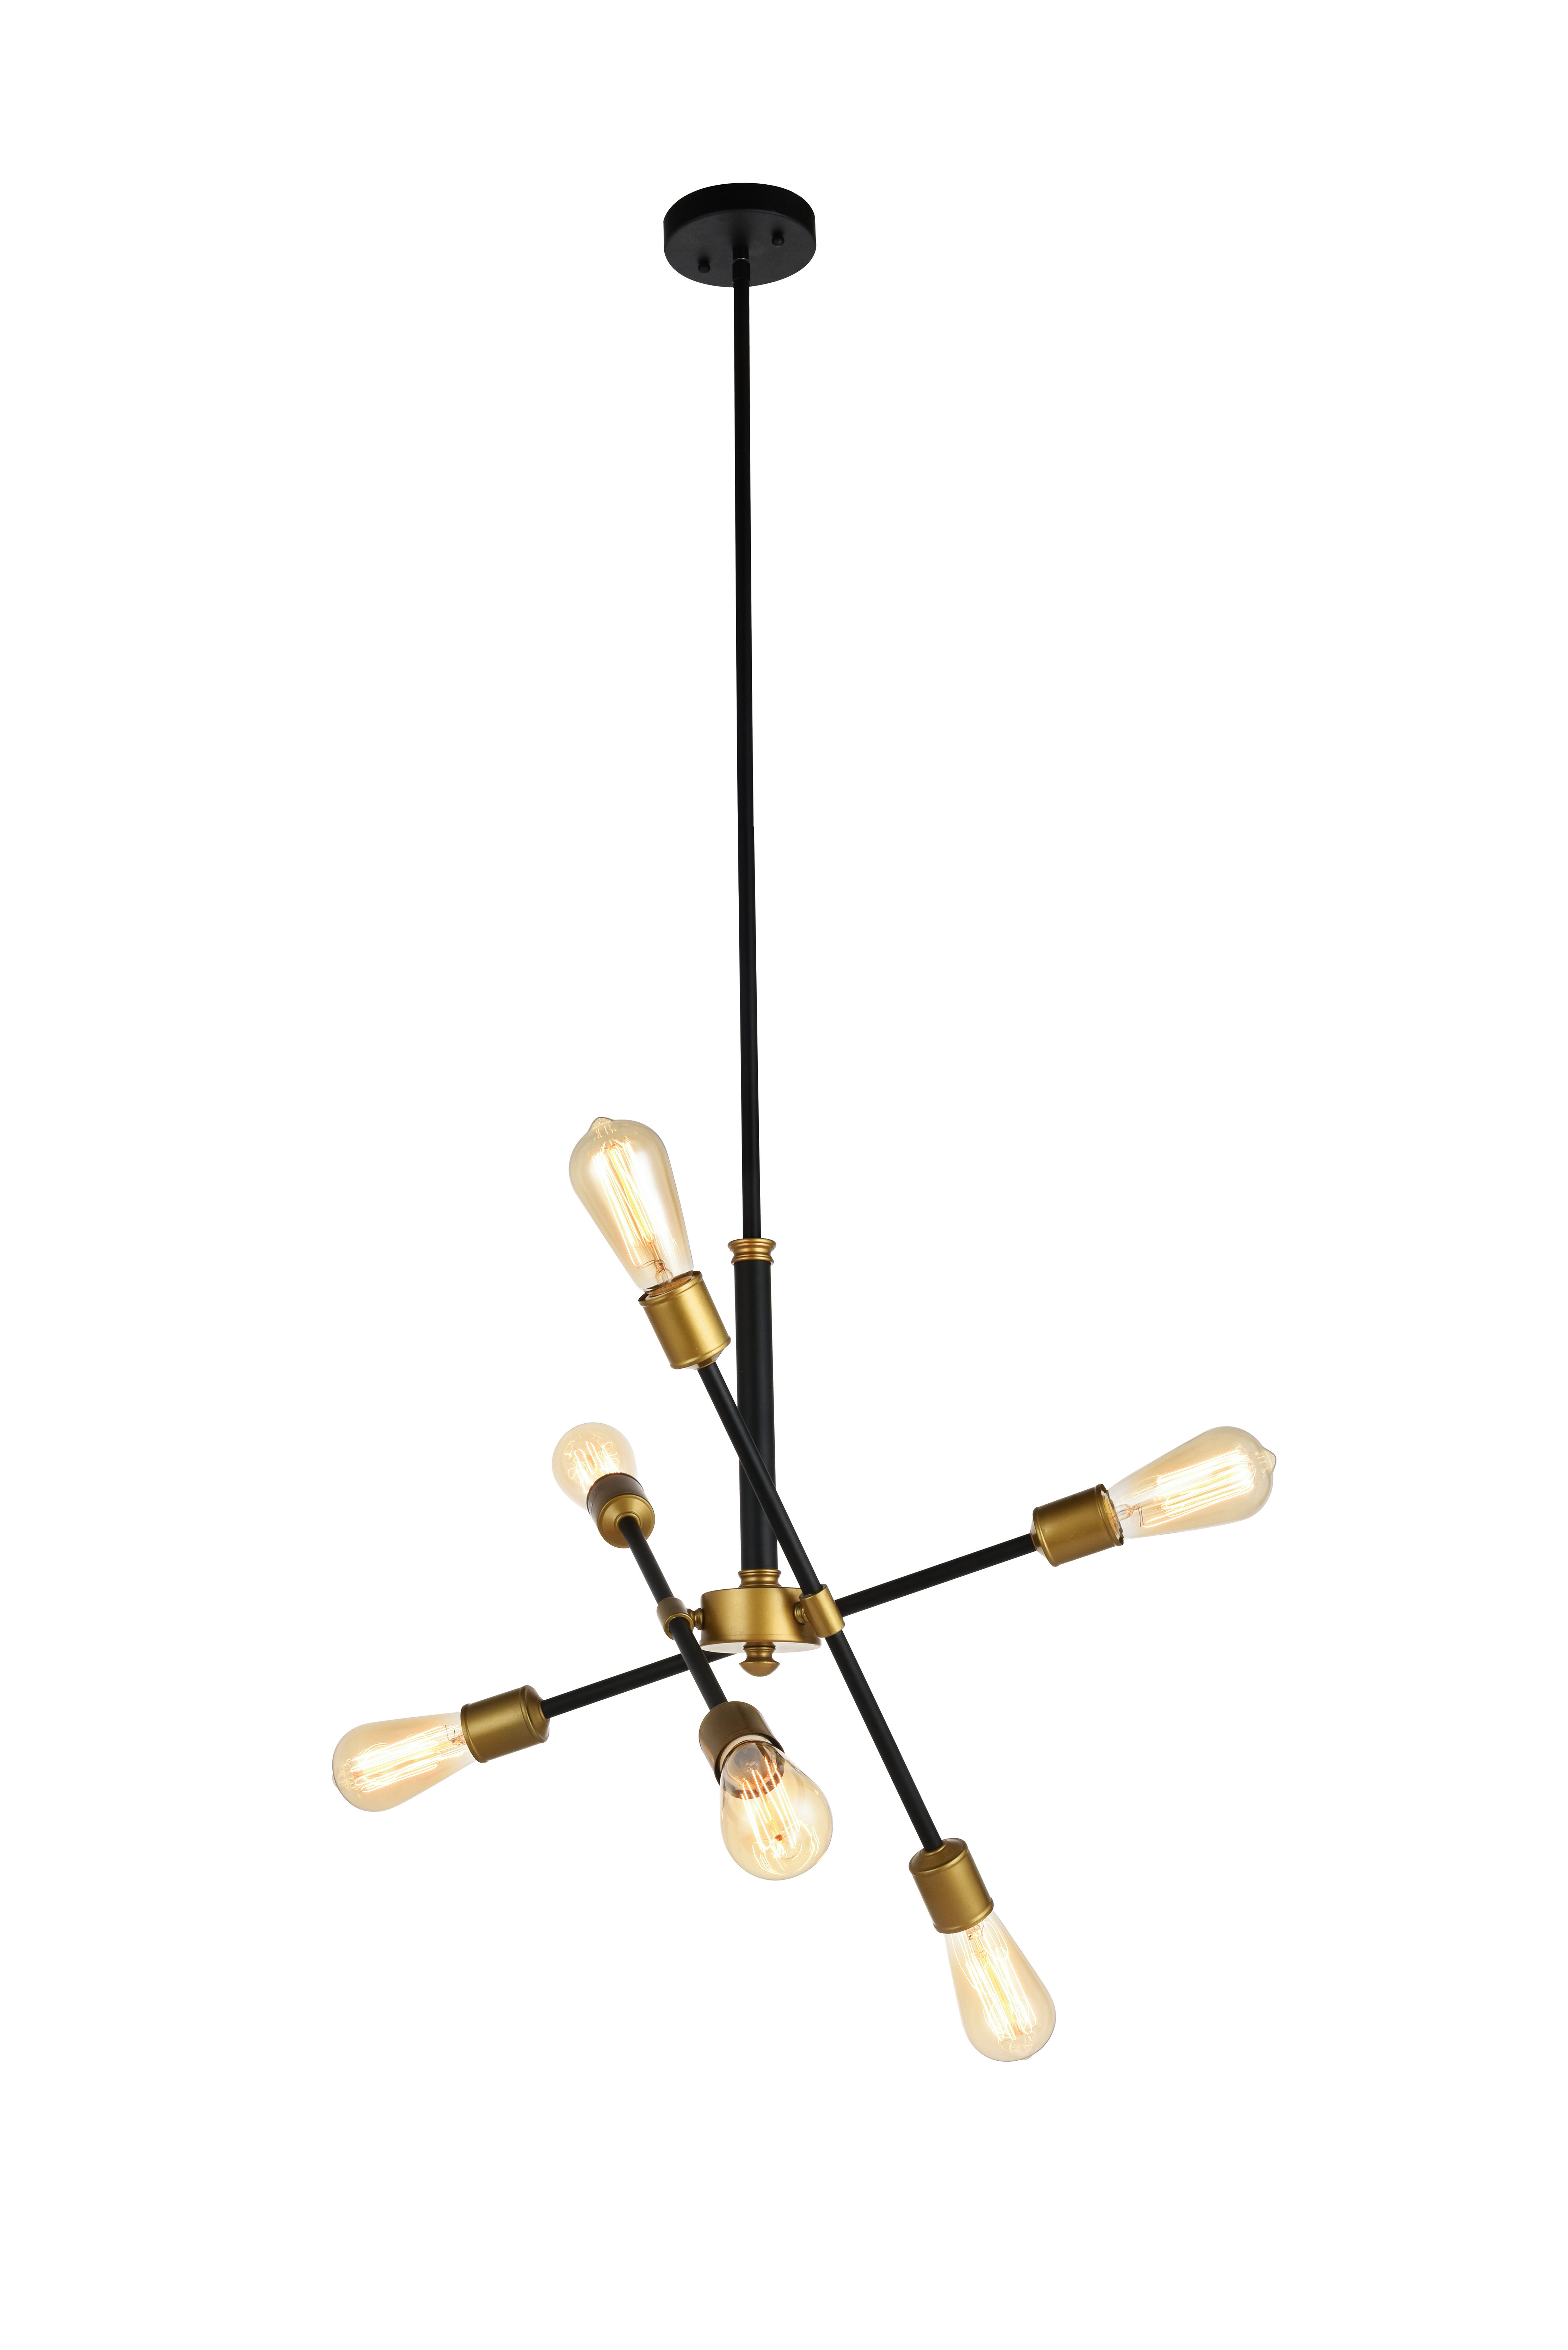 Eladia 6 Light Sputnik Chandeliers In Most Up To Date Mullet 6 Light Sputnik Chandelier (View 9 of 25)